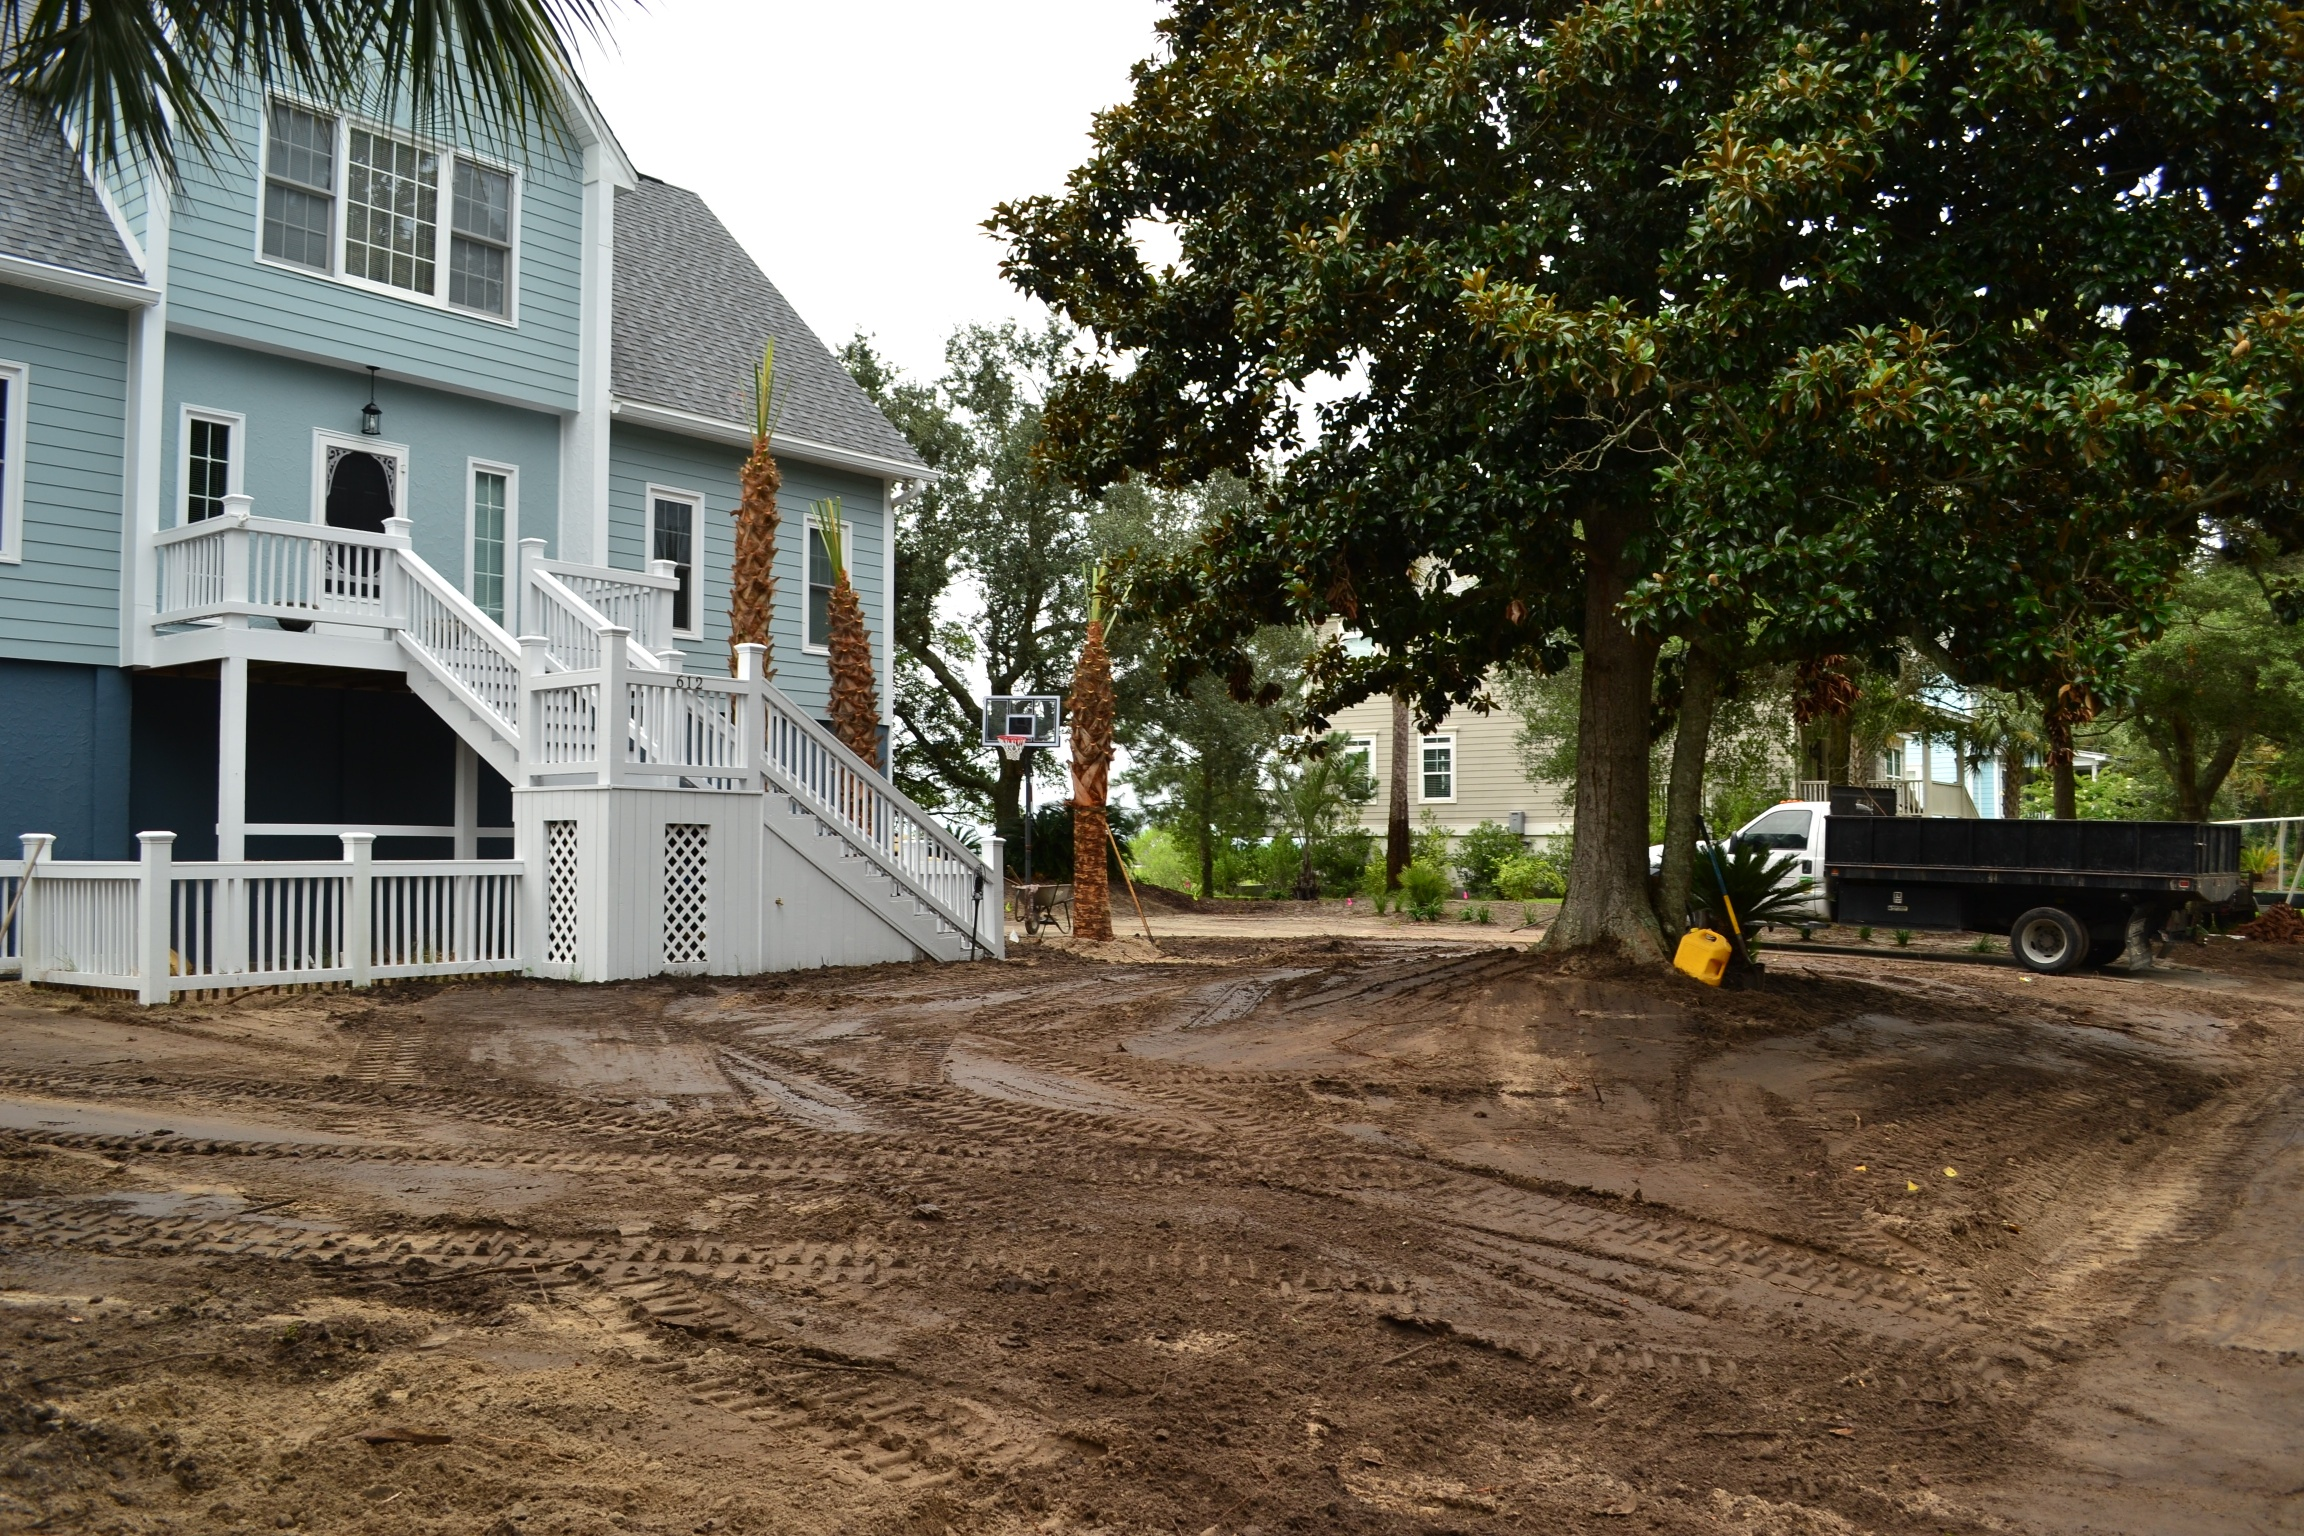 Grading & Clearing - New constructionRe-gradingBrush removalStump removal